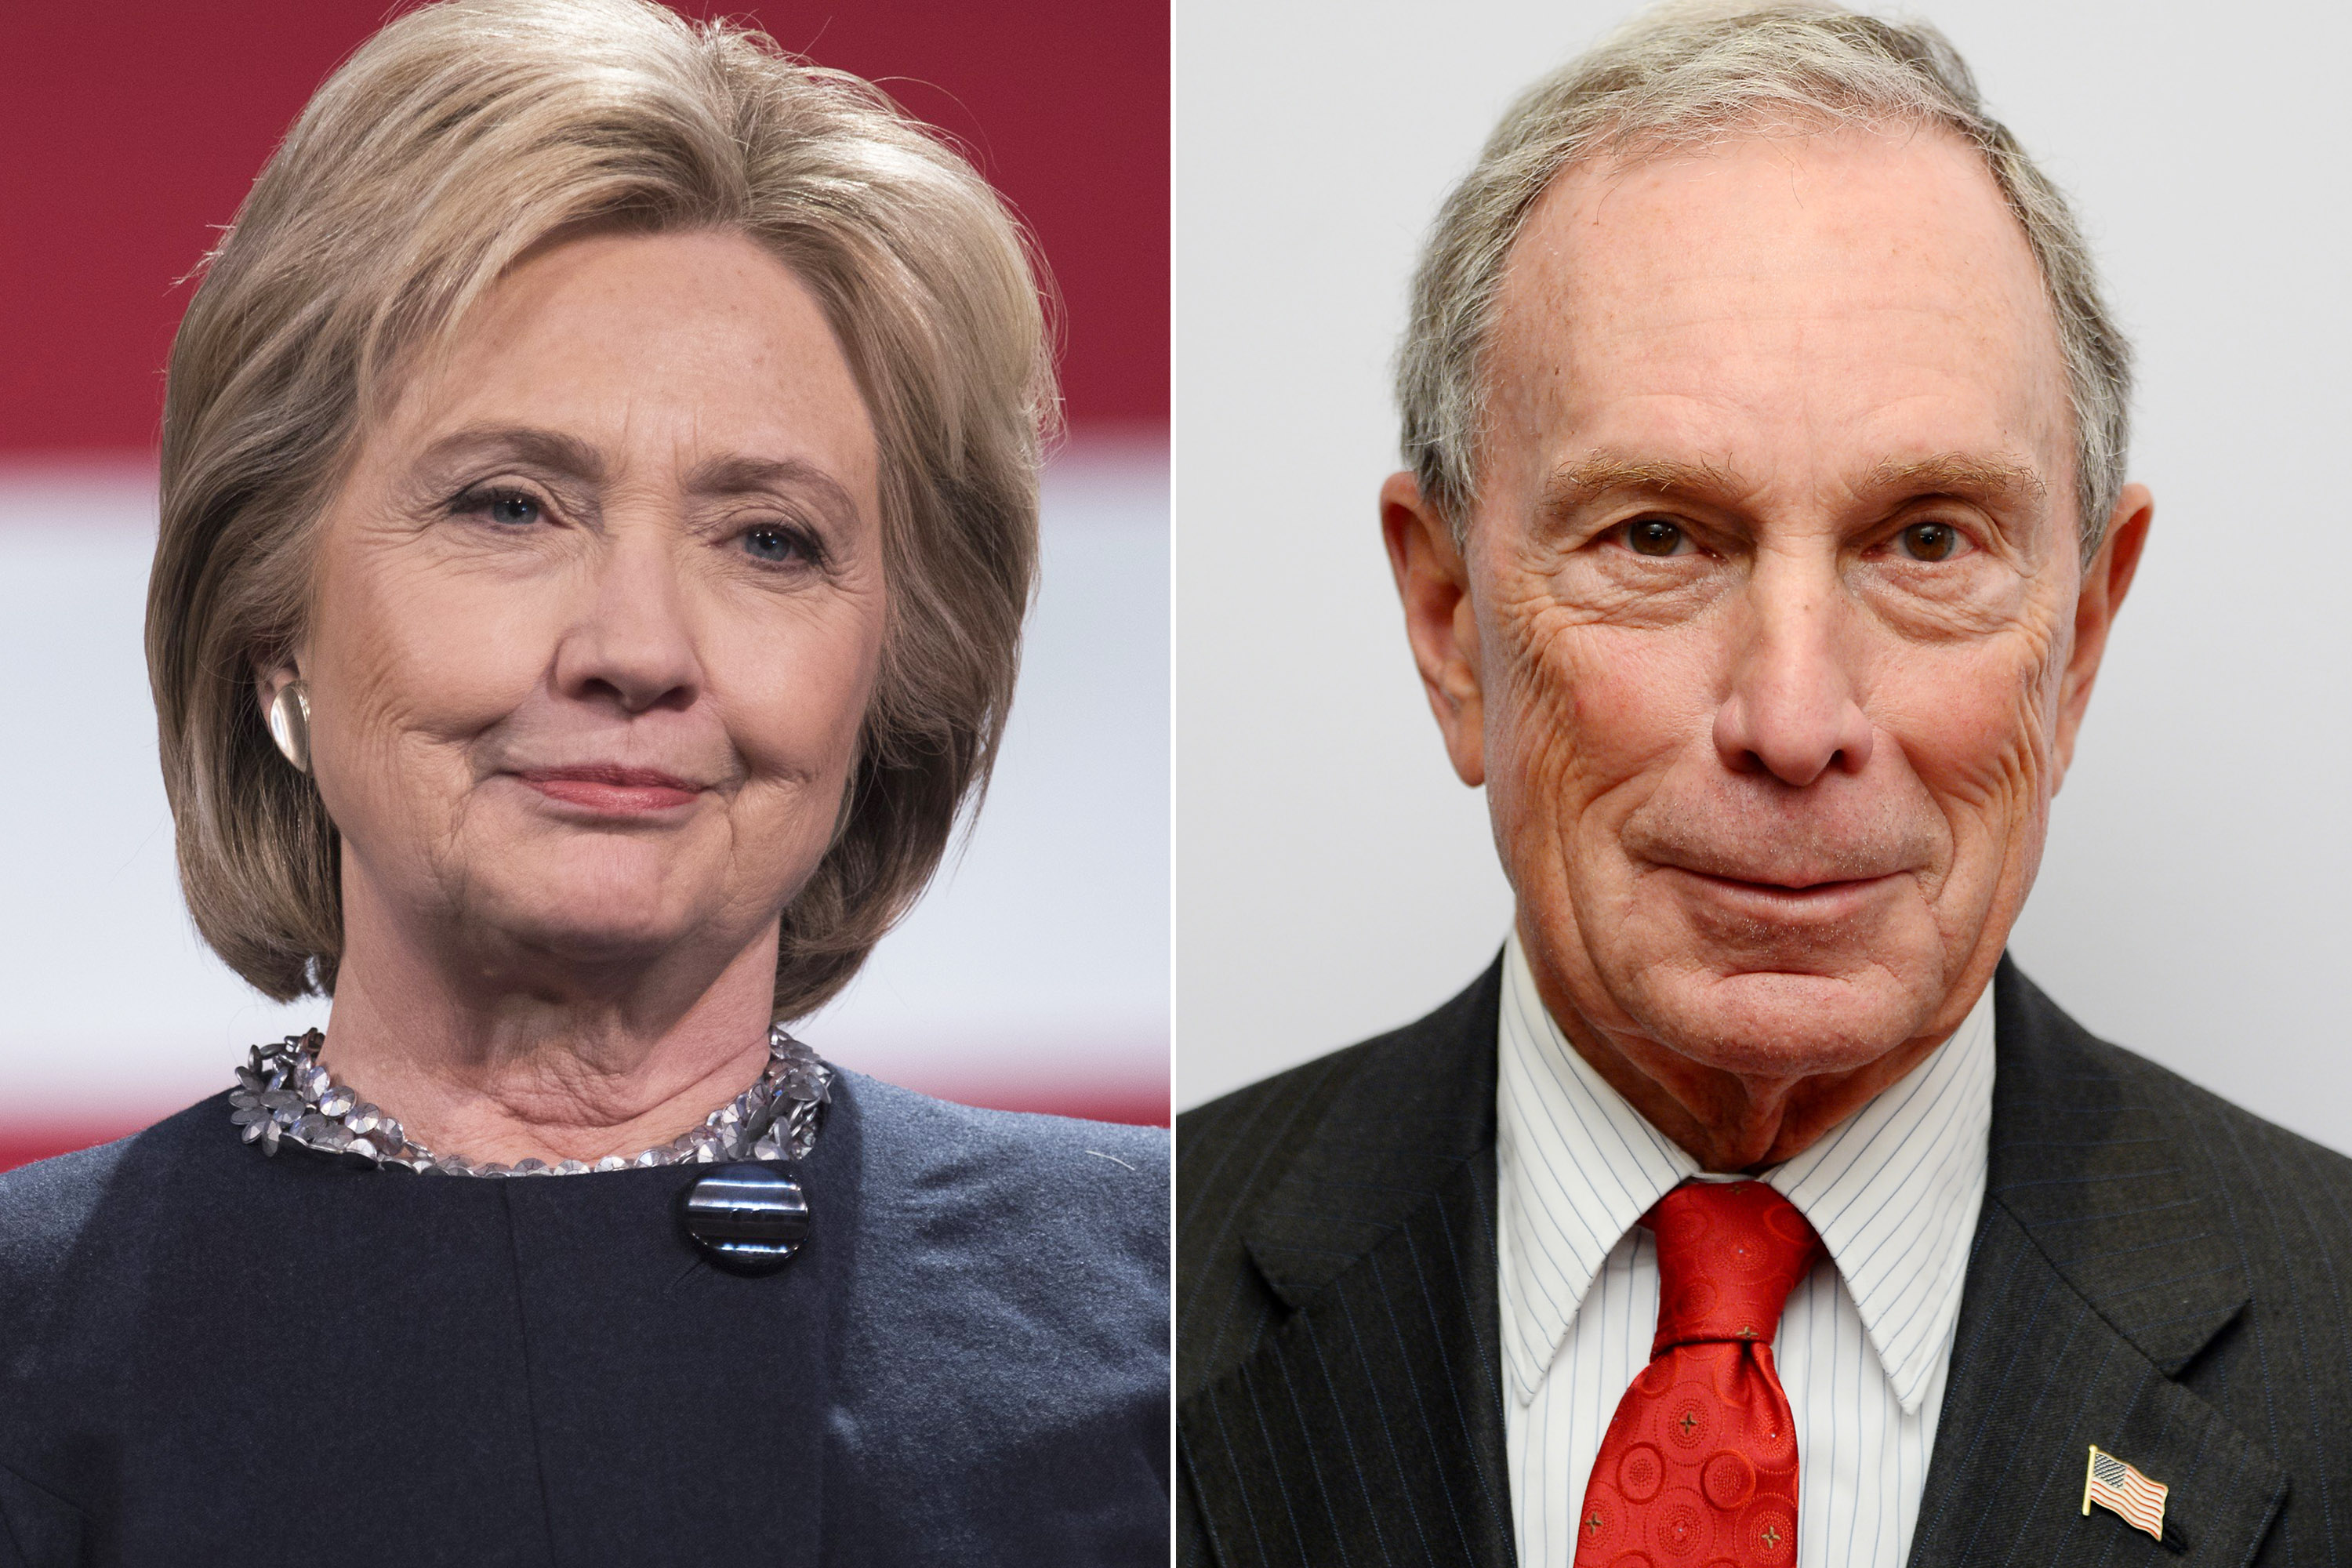 Left Hillary Clinton speaking during a campaign stop at the Rochester Opera House in Rochester, NH on January 22, 2016.  Right Michael Bloomberg attends Jazz at Lincoln Center's Ertegun Atrium and Ertegun Hall of Fame grand reopening at Jazz at Lincoln Center in New York City on Dec. 17, 2015.